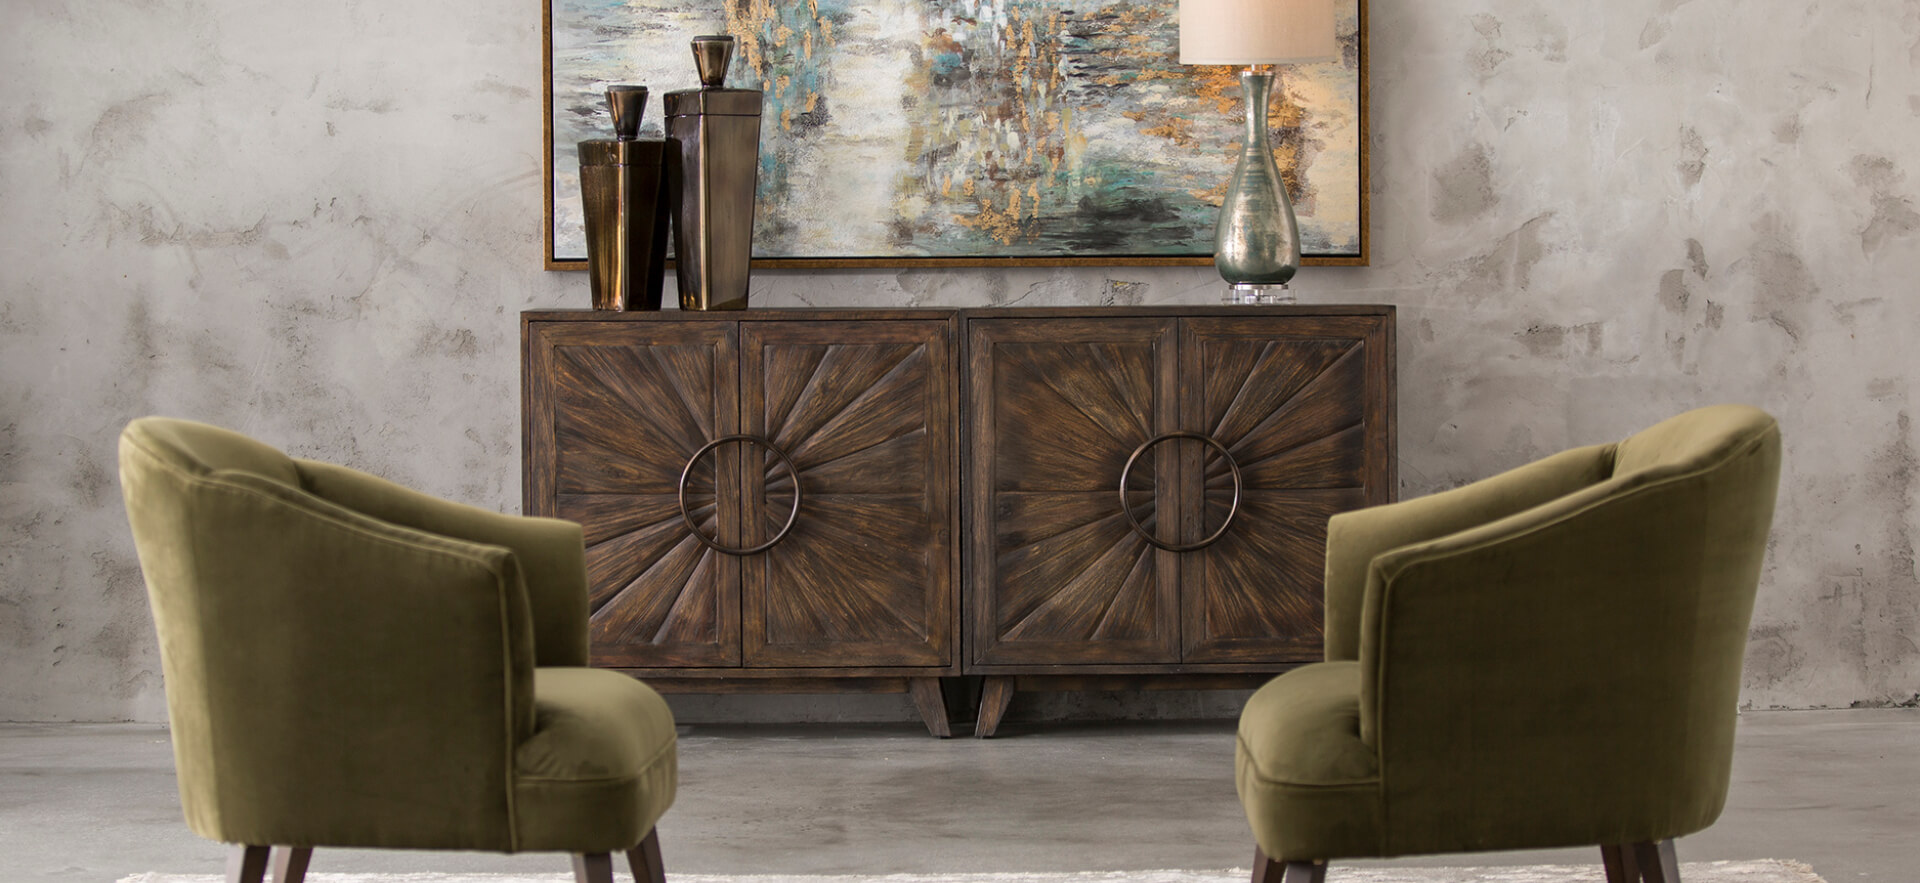 Uttermost Accent Furniture Mirrors Wall Decor Clocks